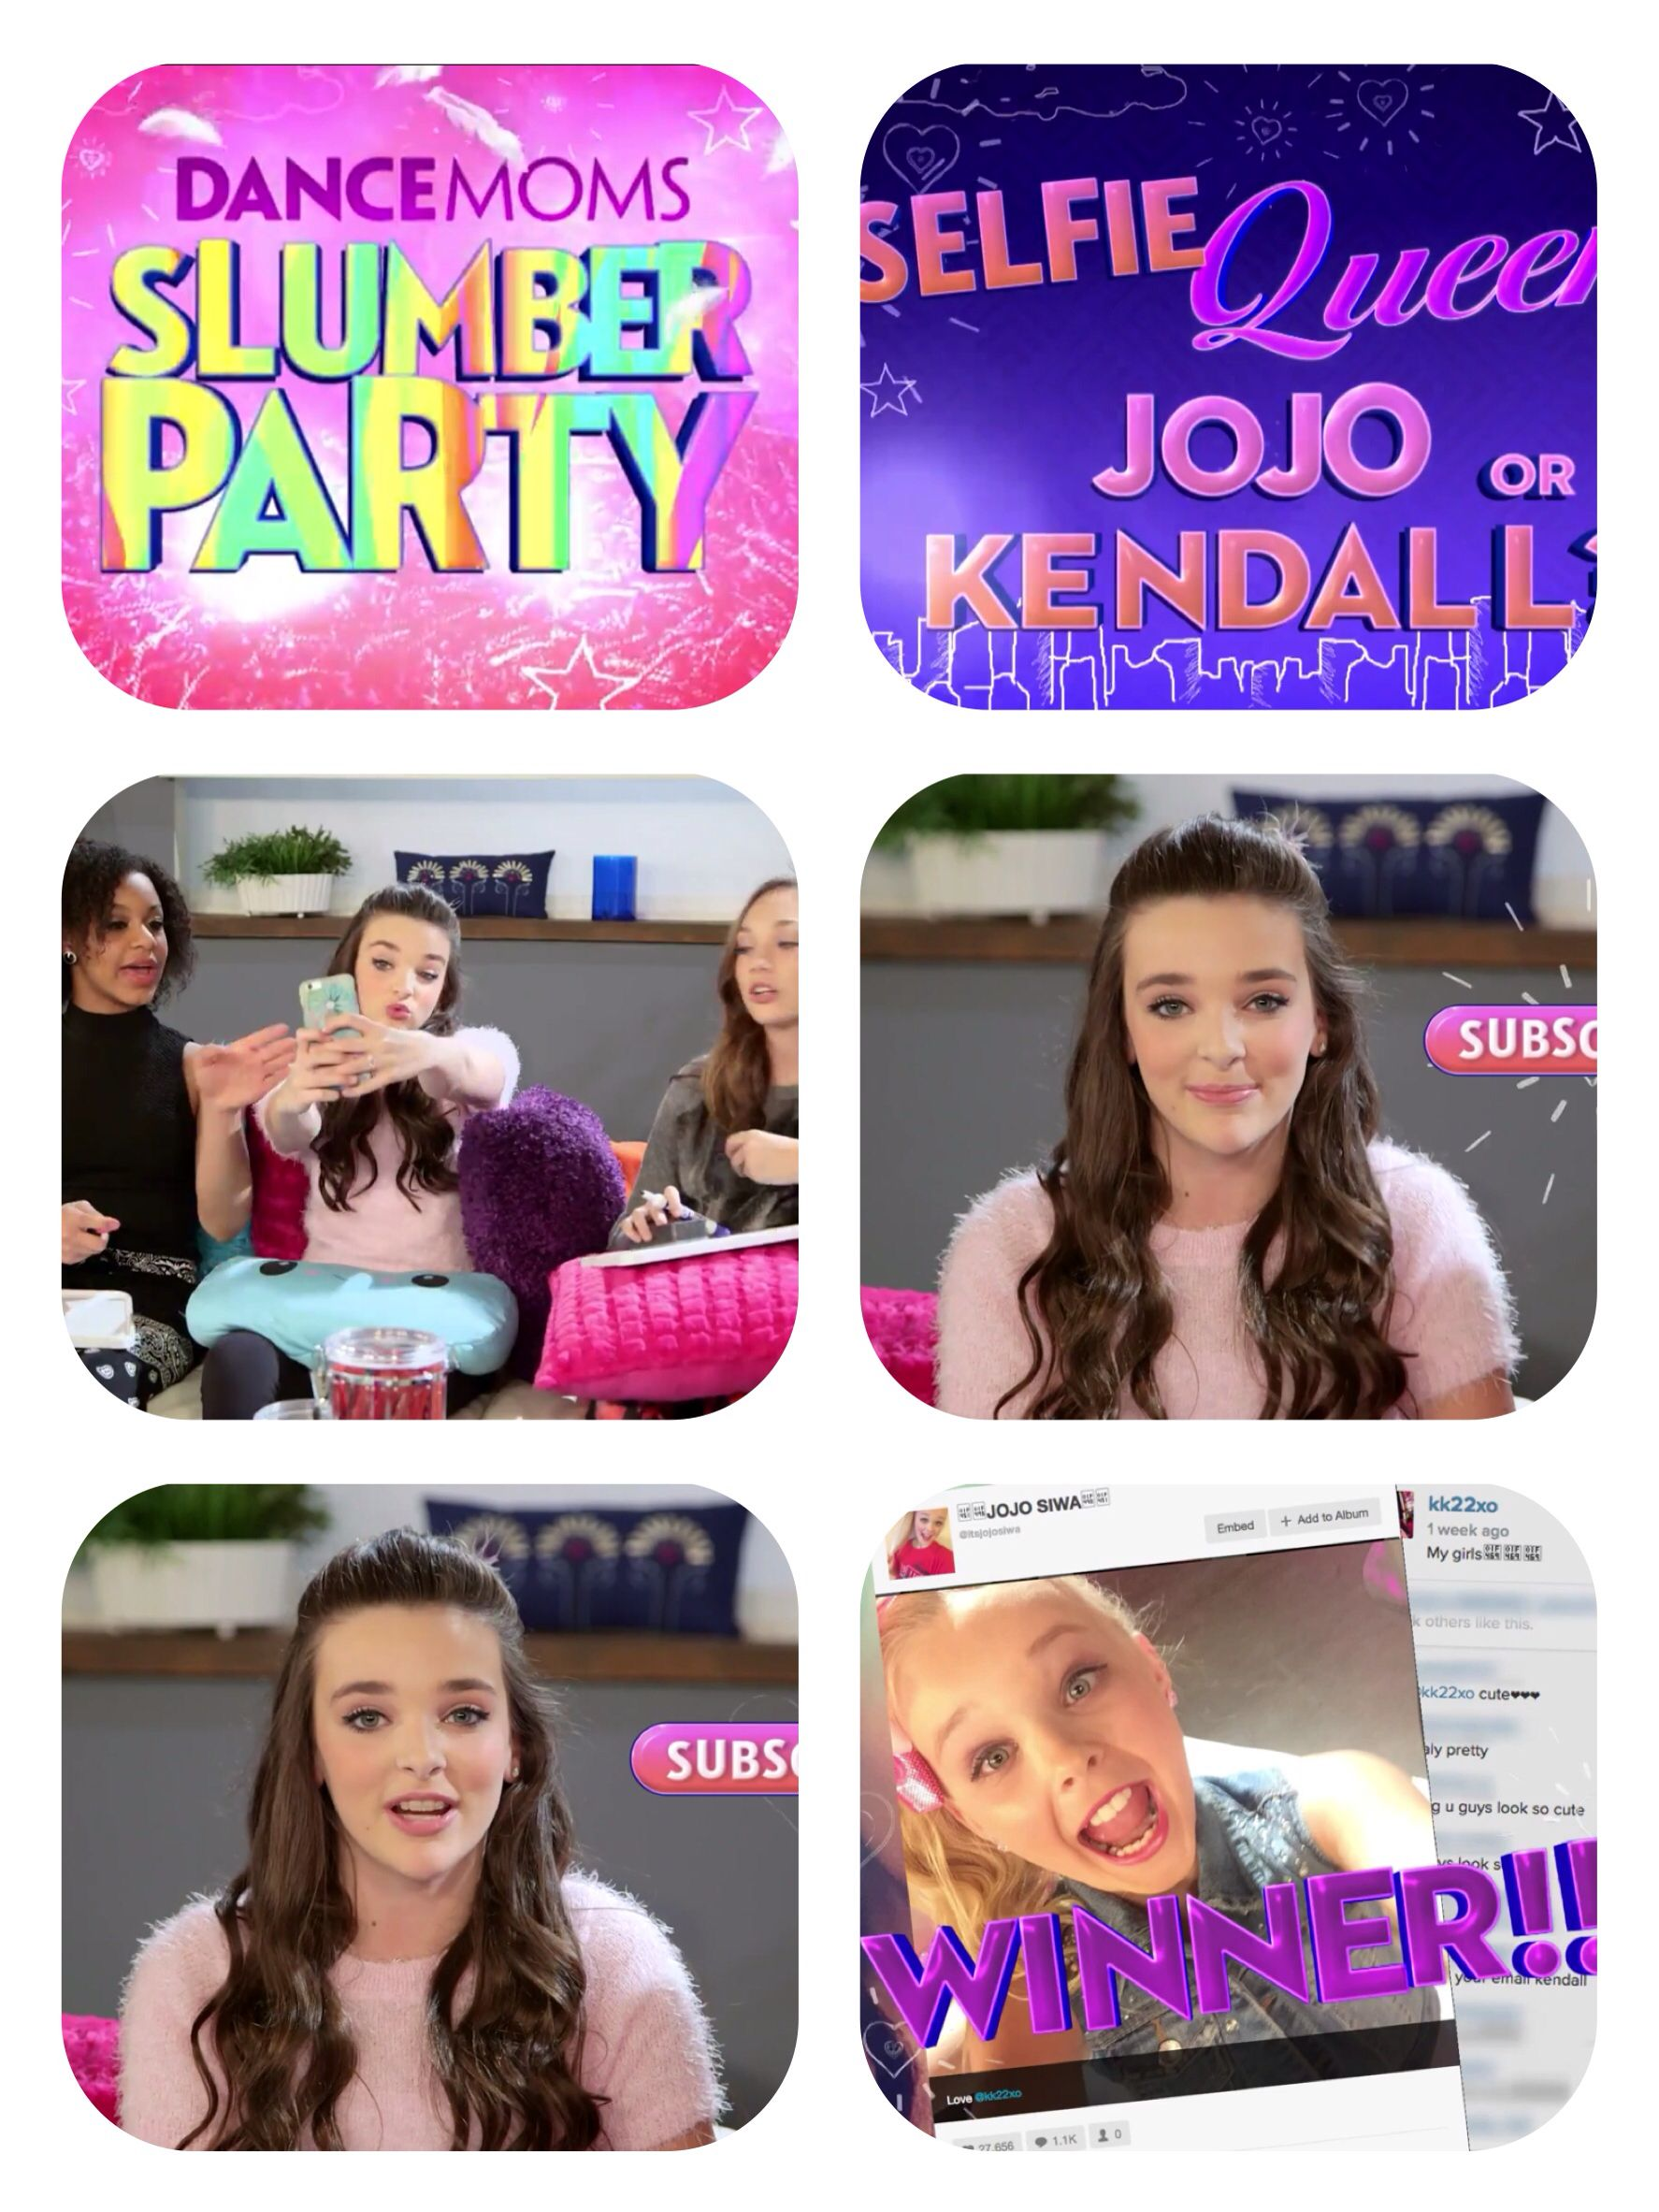 Search Dance Moms Slumber Party On Youtube To See The Girls In An All New Video By Lifetime Dance Moms Dance Moms Pictures Slumber Parties